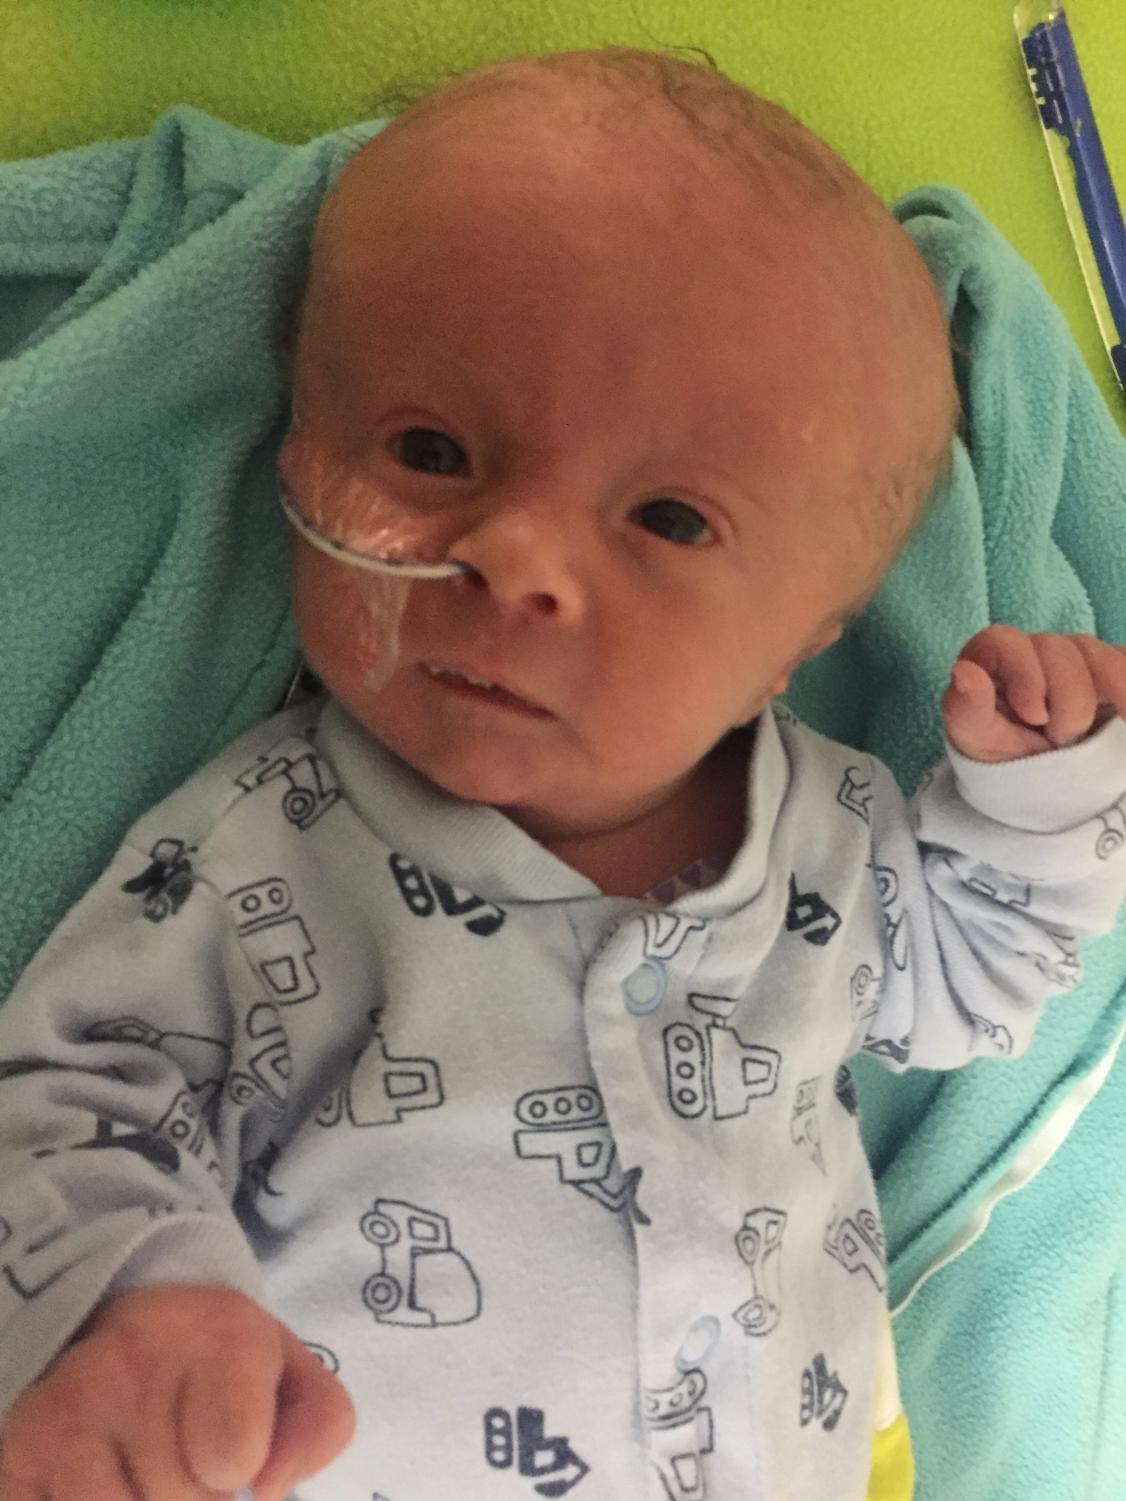 Andy and Mallorie Ward's newborn, Bennett, is photographed during his extended stay in Iowa City hospital's NICU.